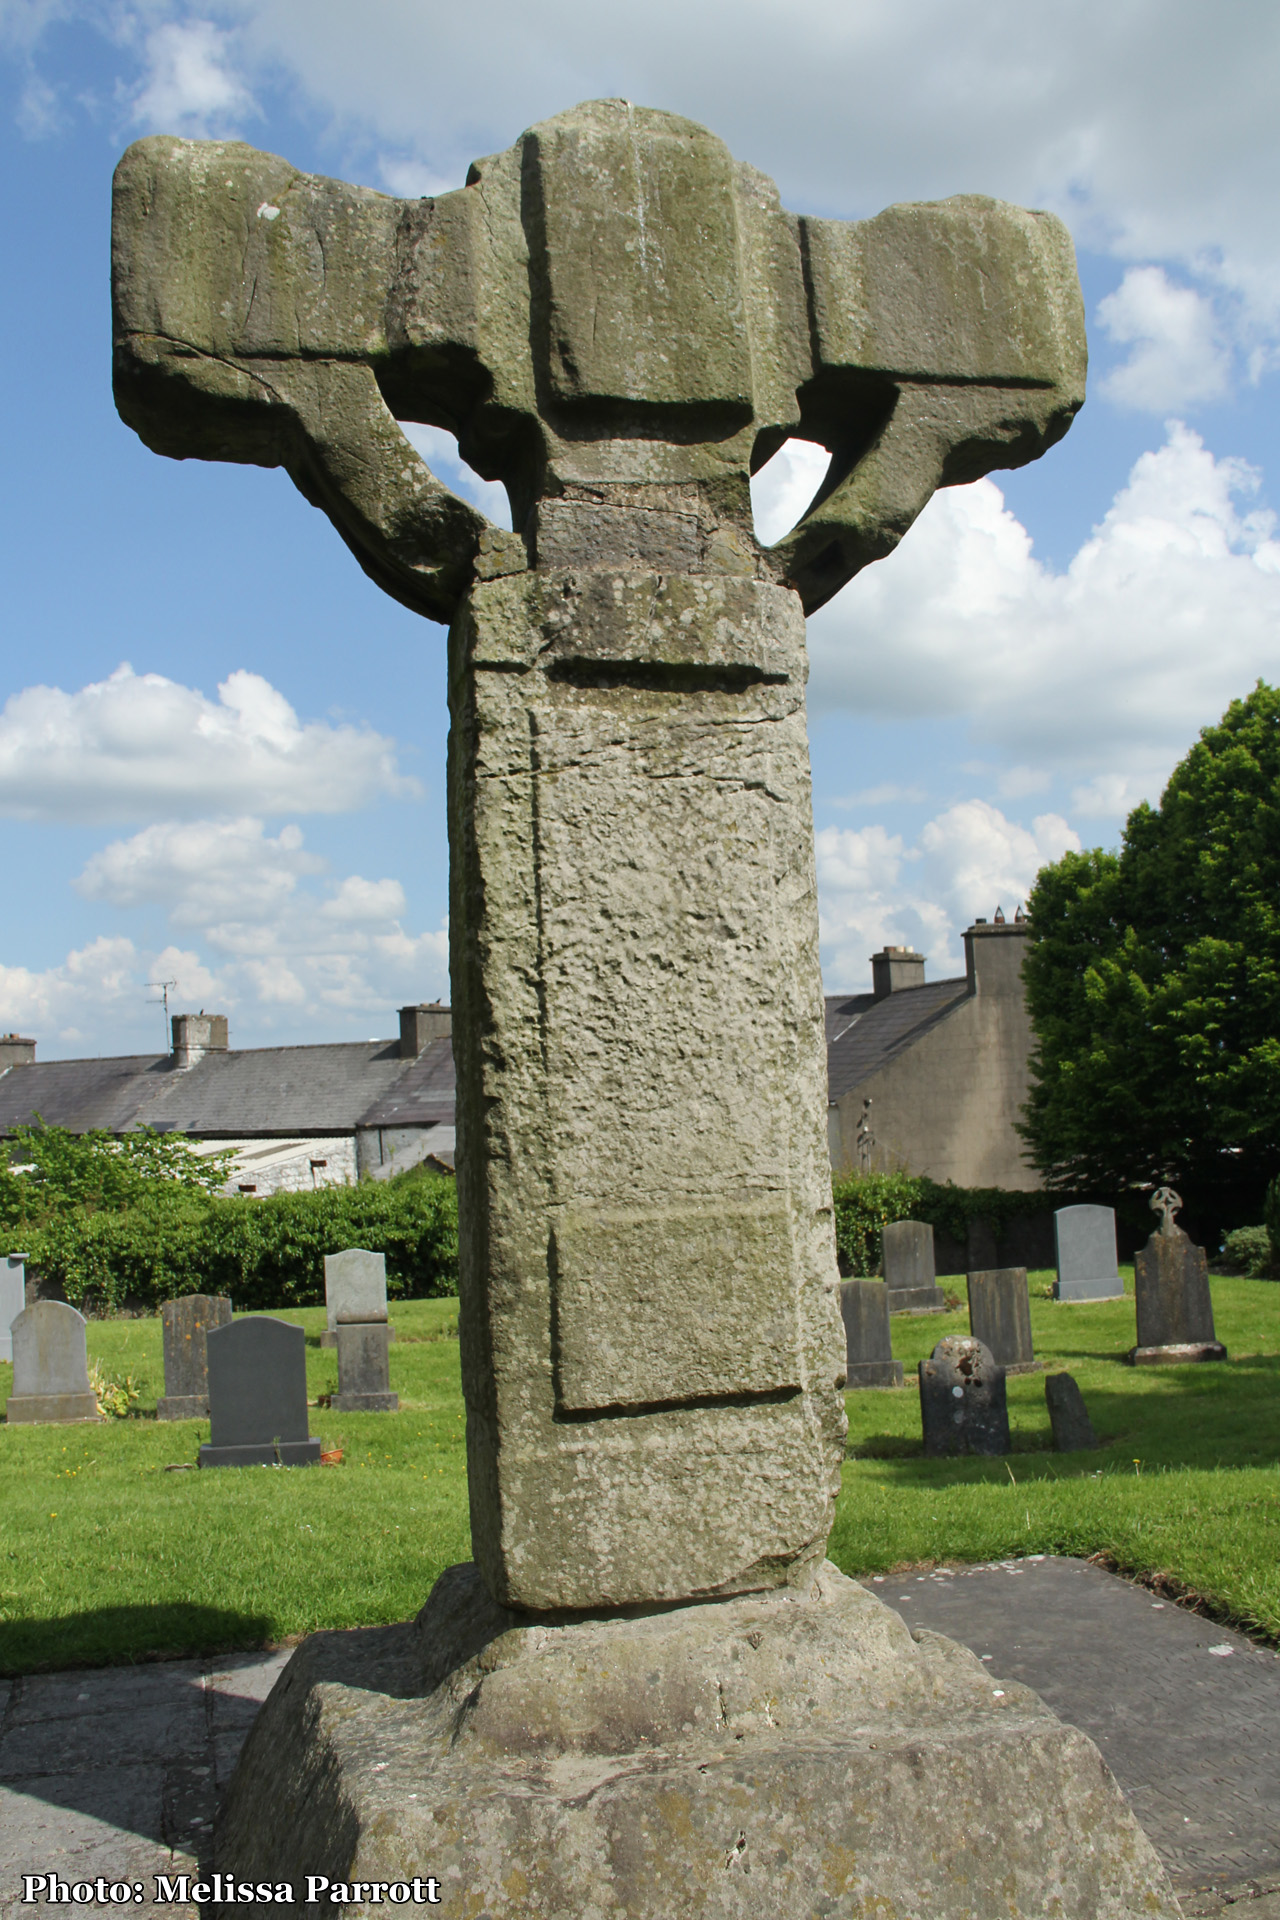 The East Cross